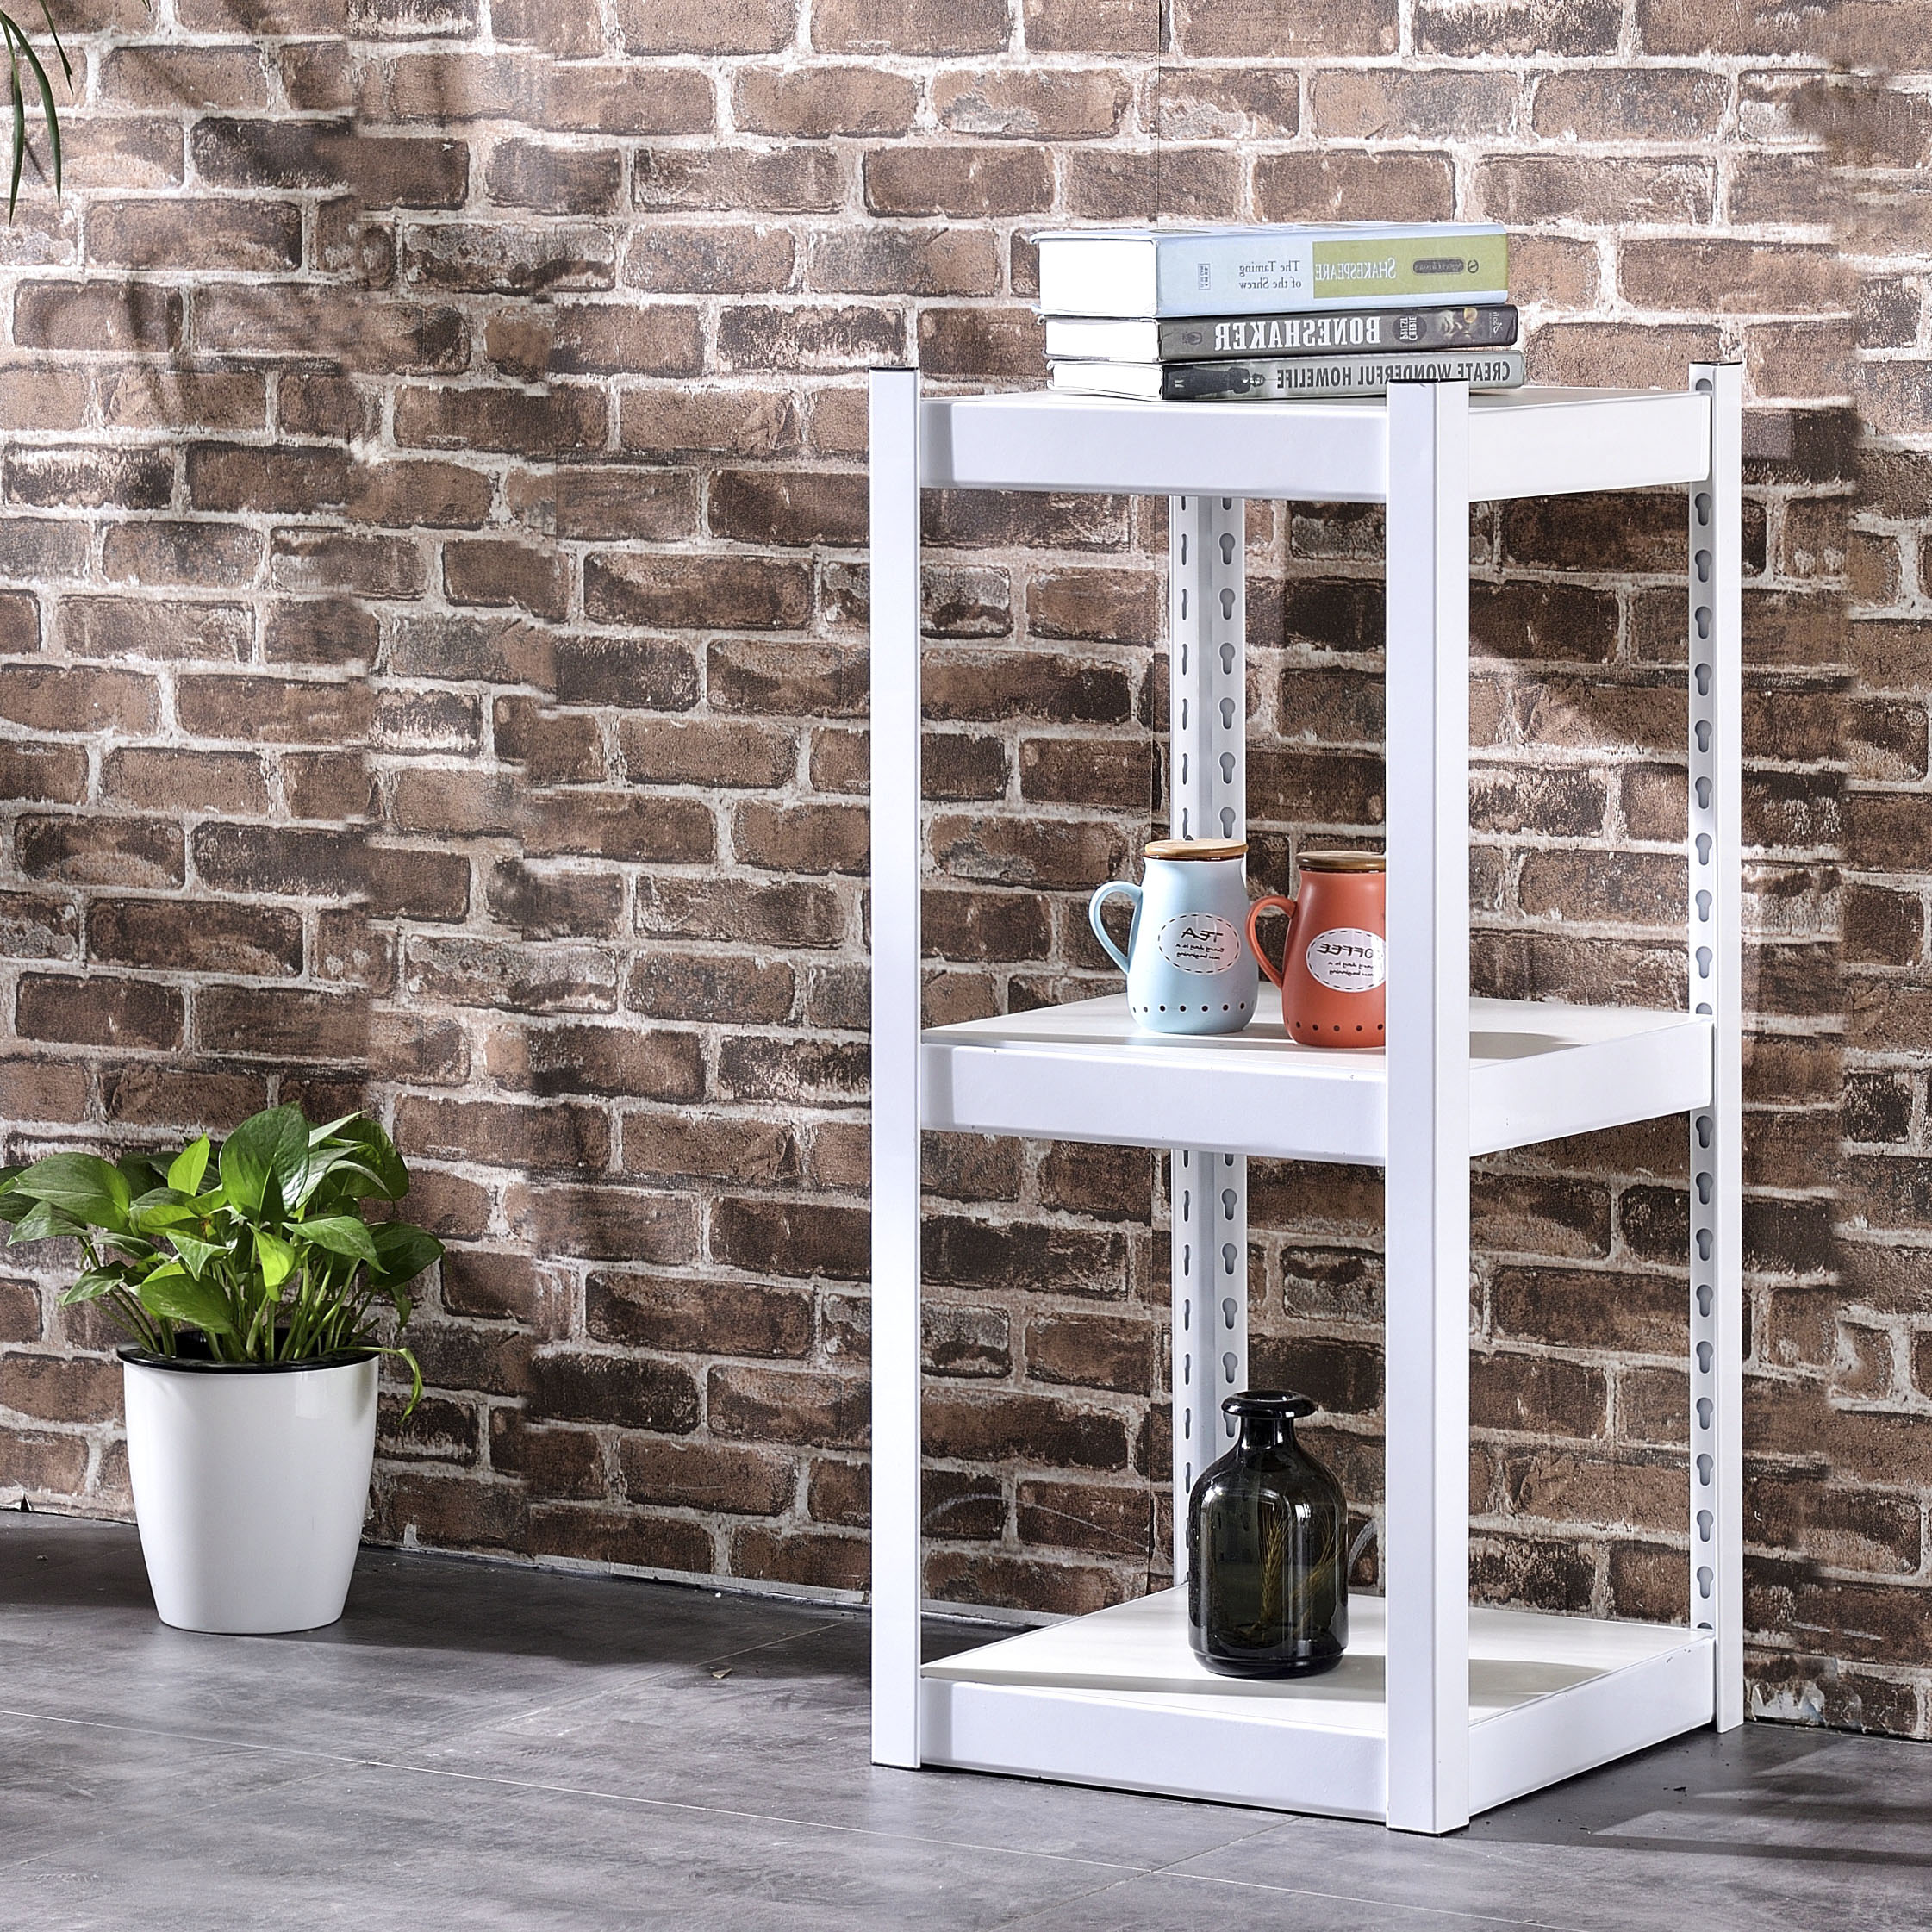 White Household Shelves Kitchen Microwave Oven Oven Coffee Table Shelf  Shelf Living Room Balcony Kitchen Display